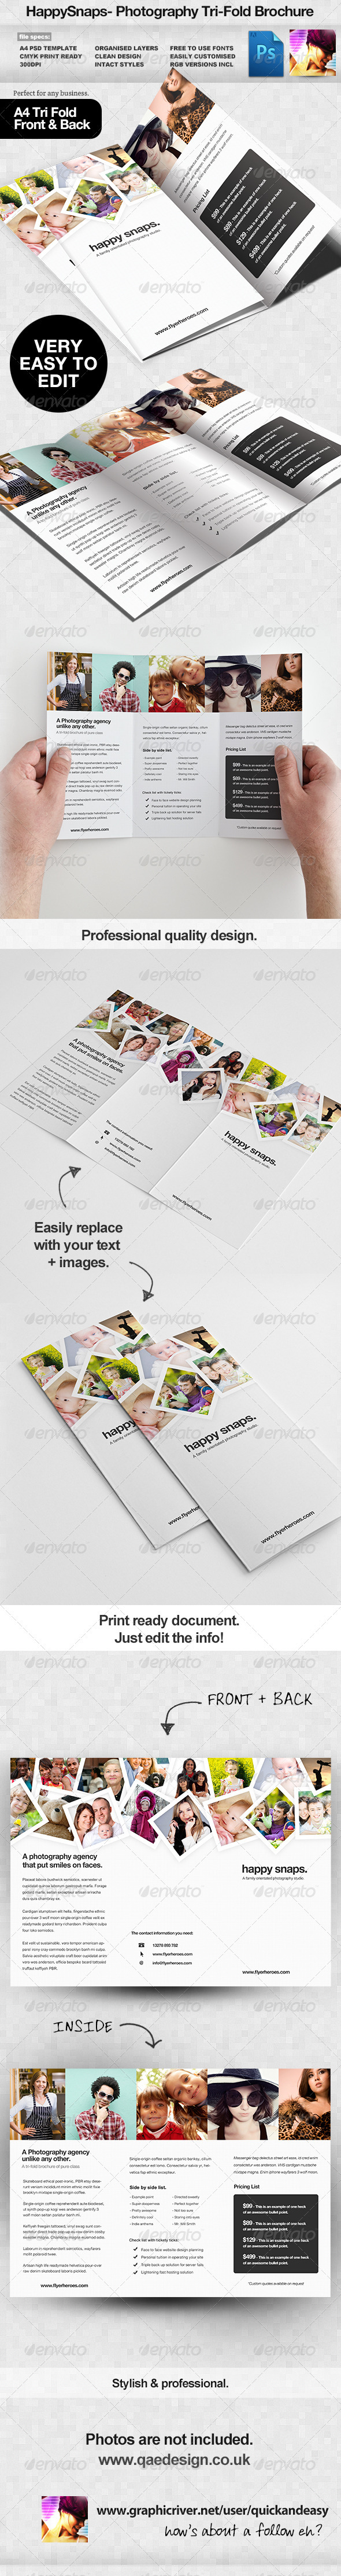 GraphicRiver HappySnaps Photography Photographer Tri Fold 3847174